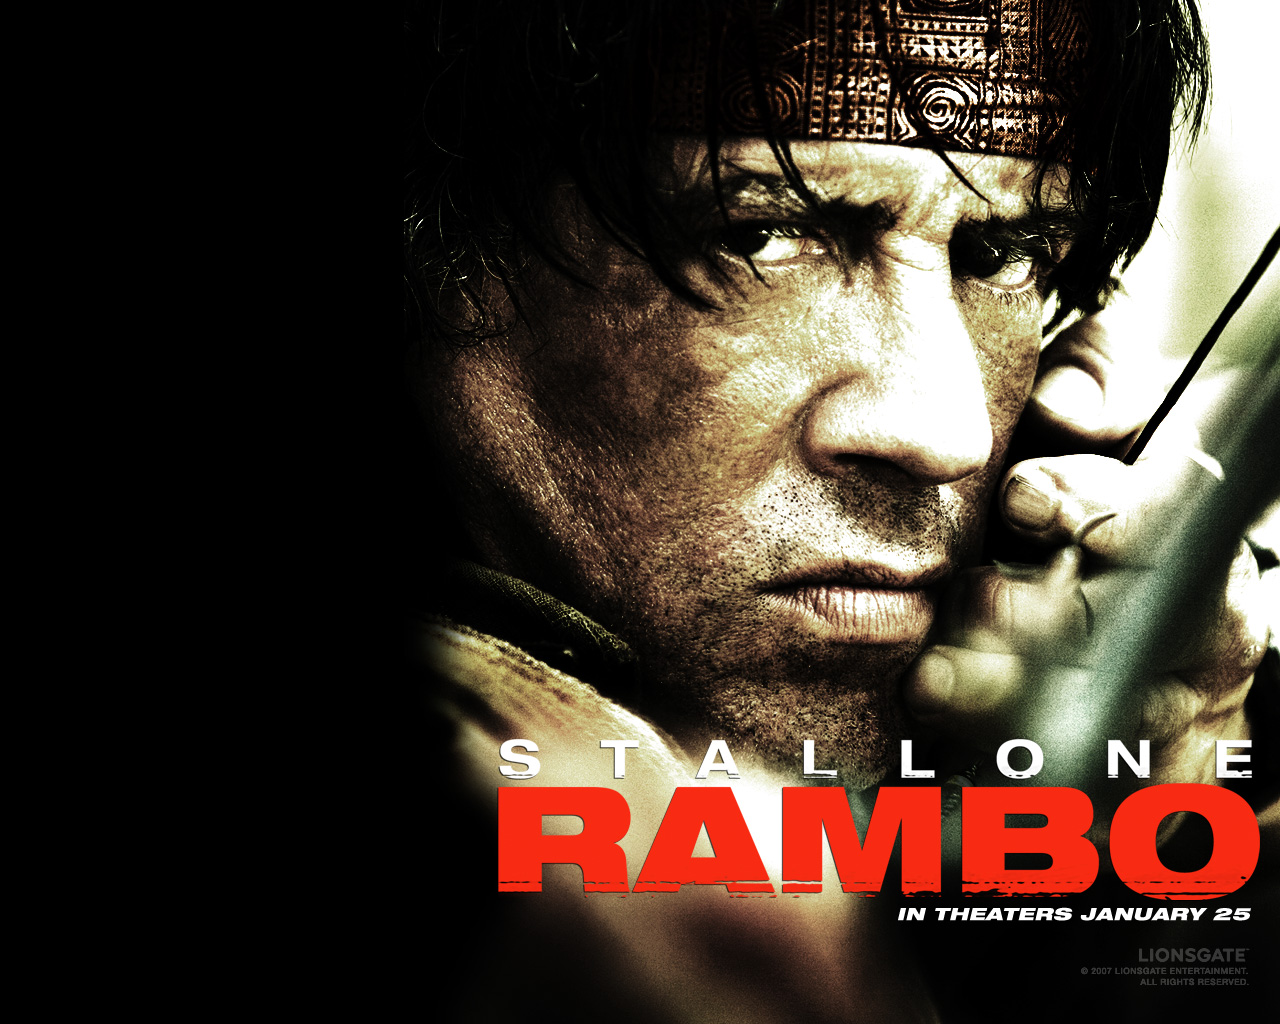 Rambo 5 Is Coming: Check Out The Awesome Official Poster